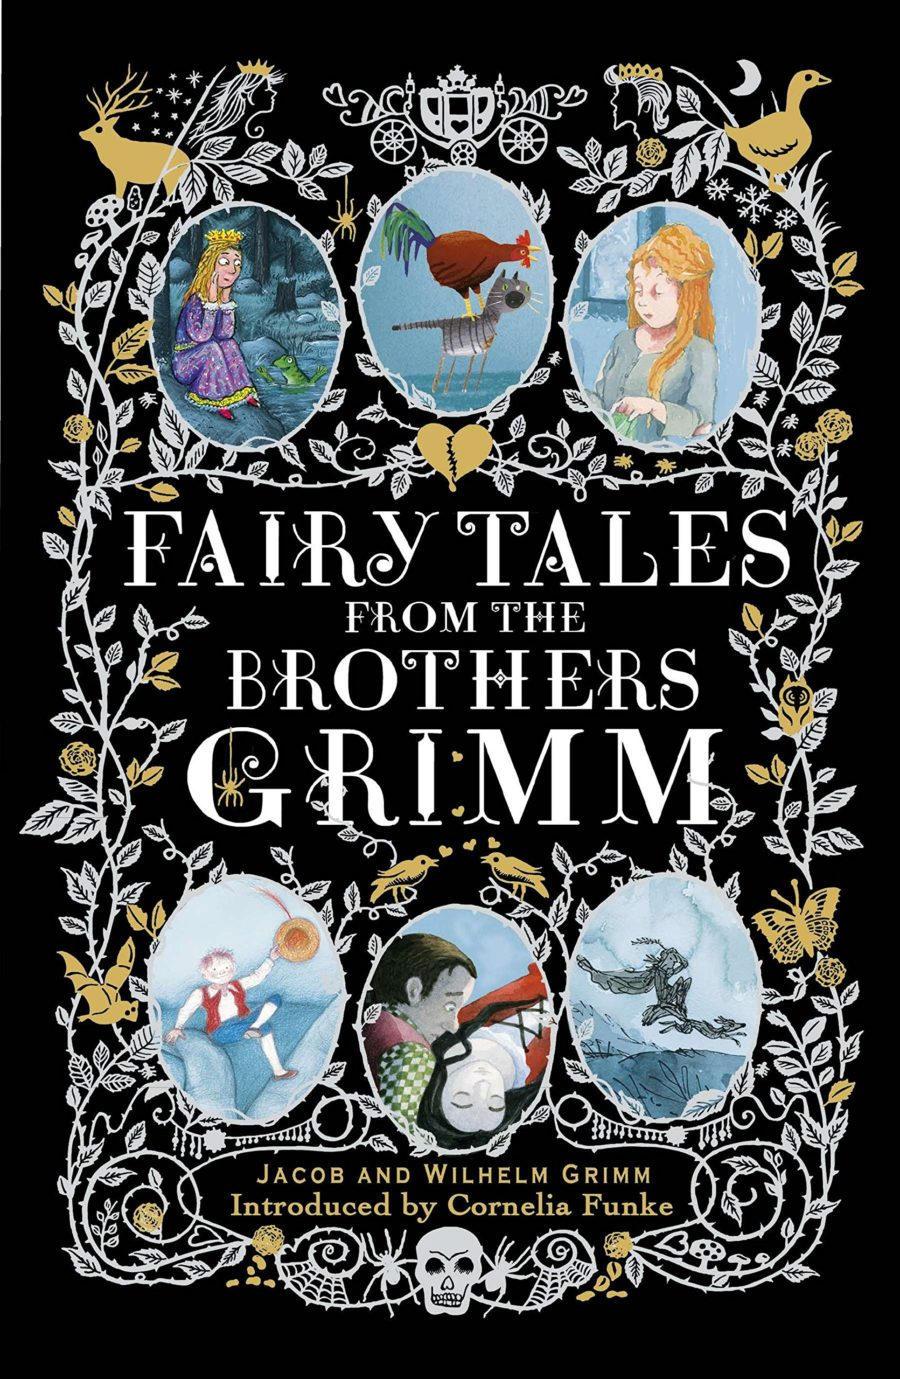 FairyTalesfromBrothersGrimm